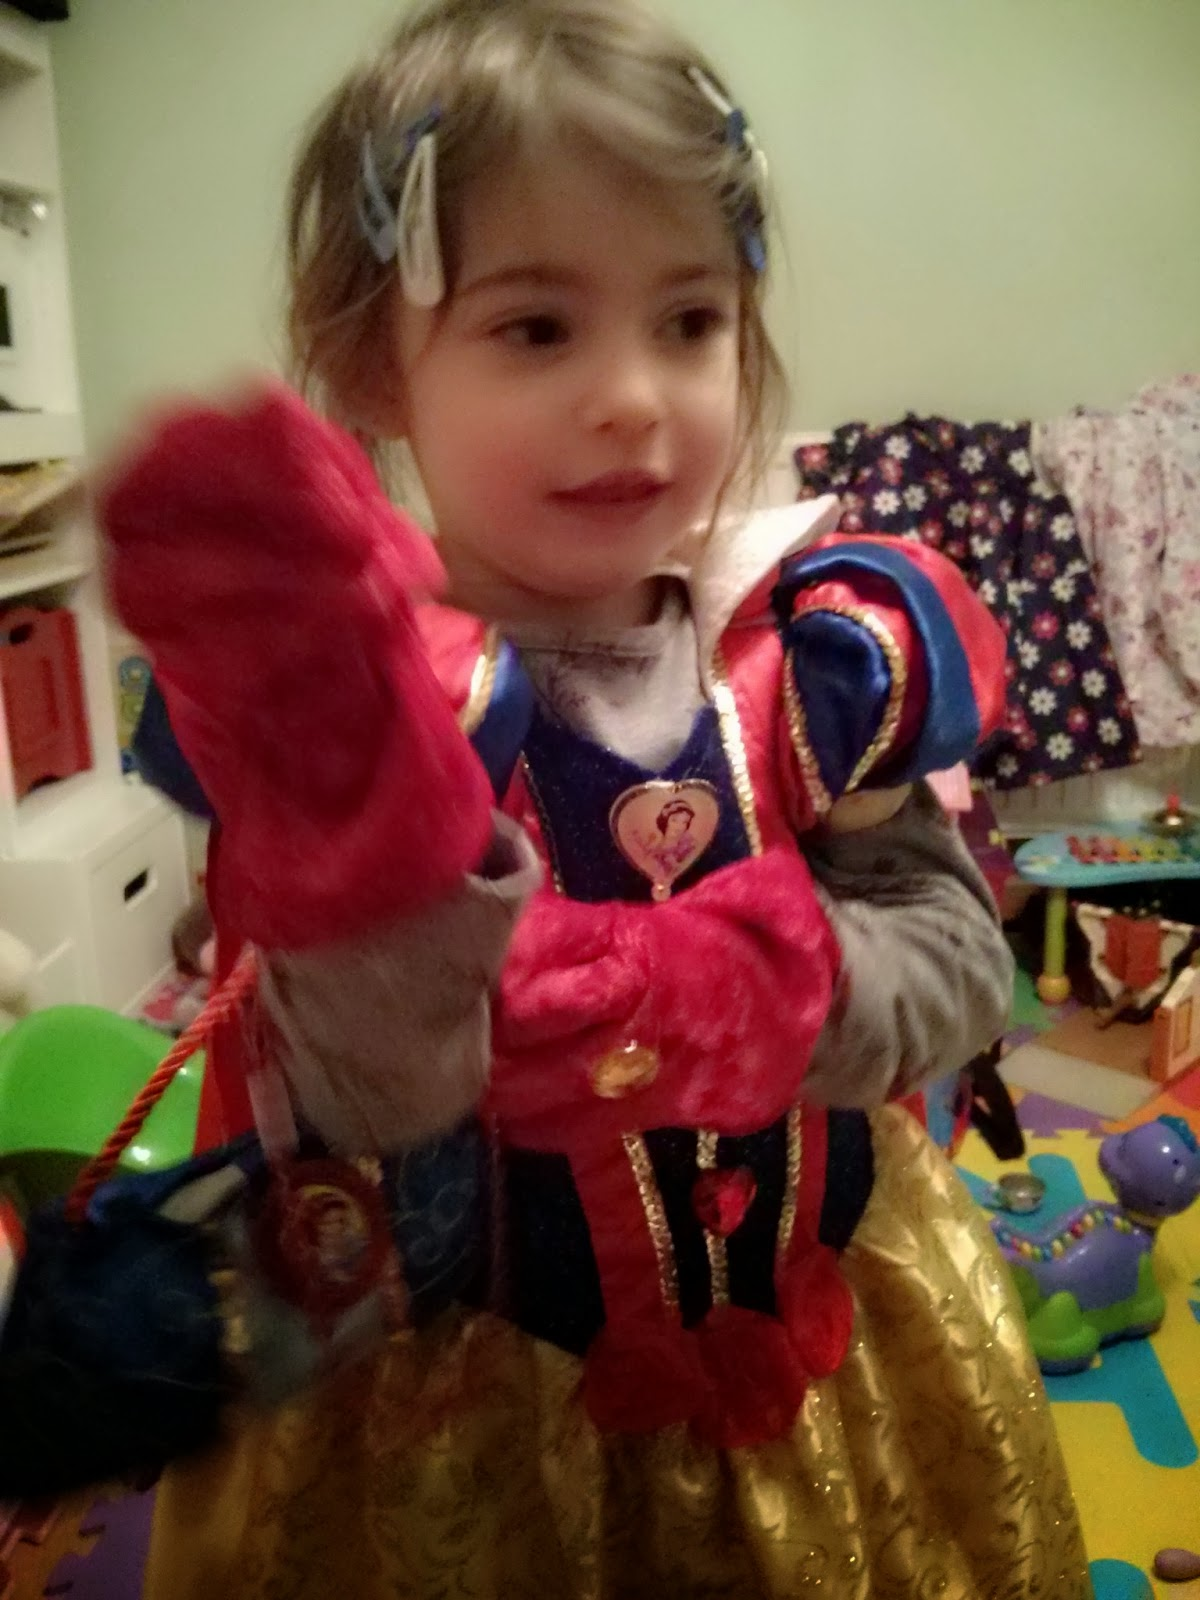 Eldest as snow white